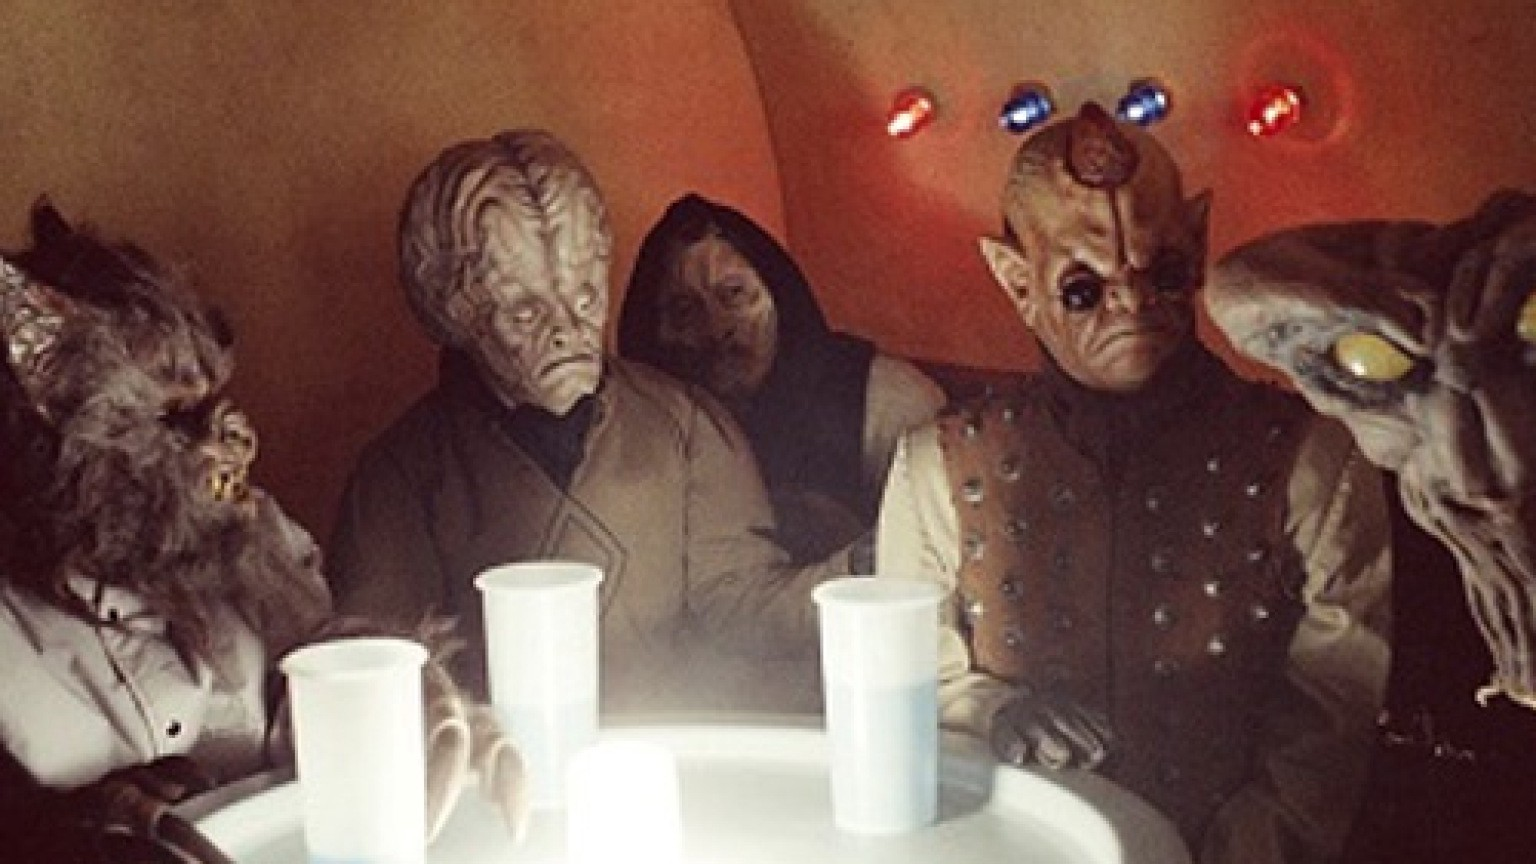 A shot of background characters in the Mos Eisley cantina